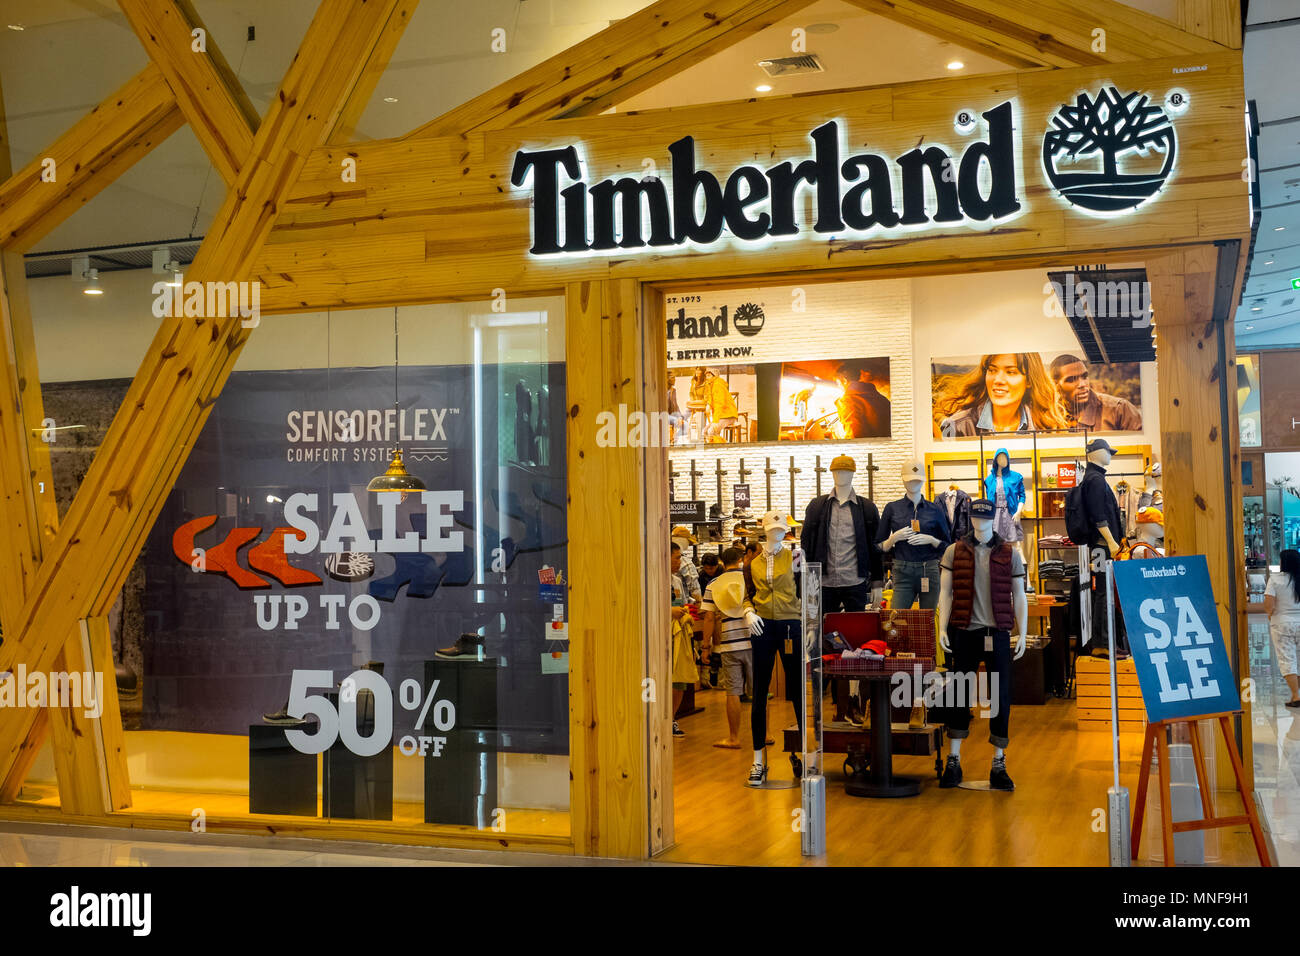 Photos Images Alamy Stock Shoes Timberland amp; Baq8EWw